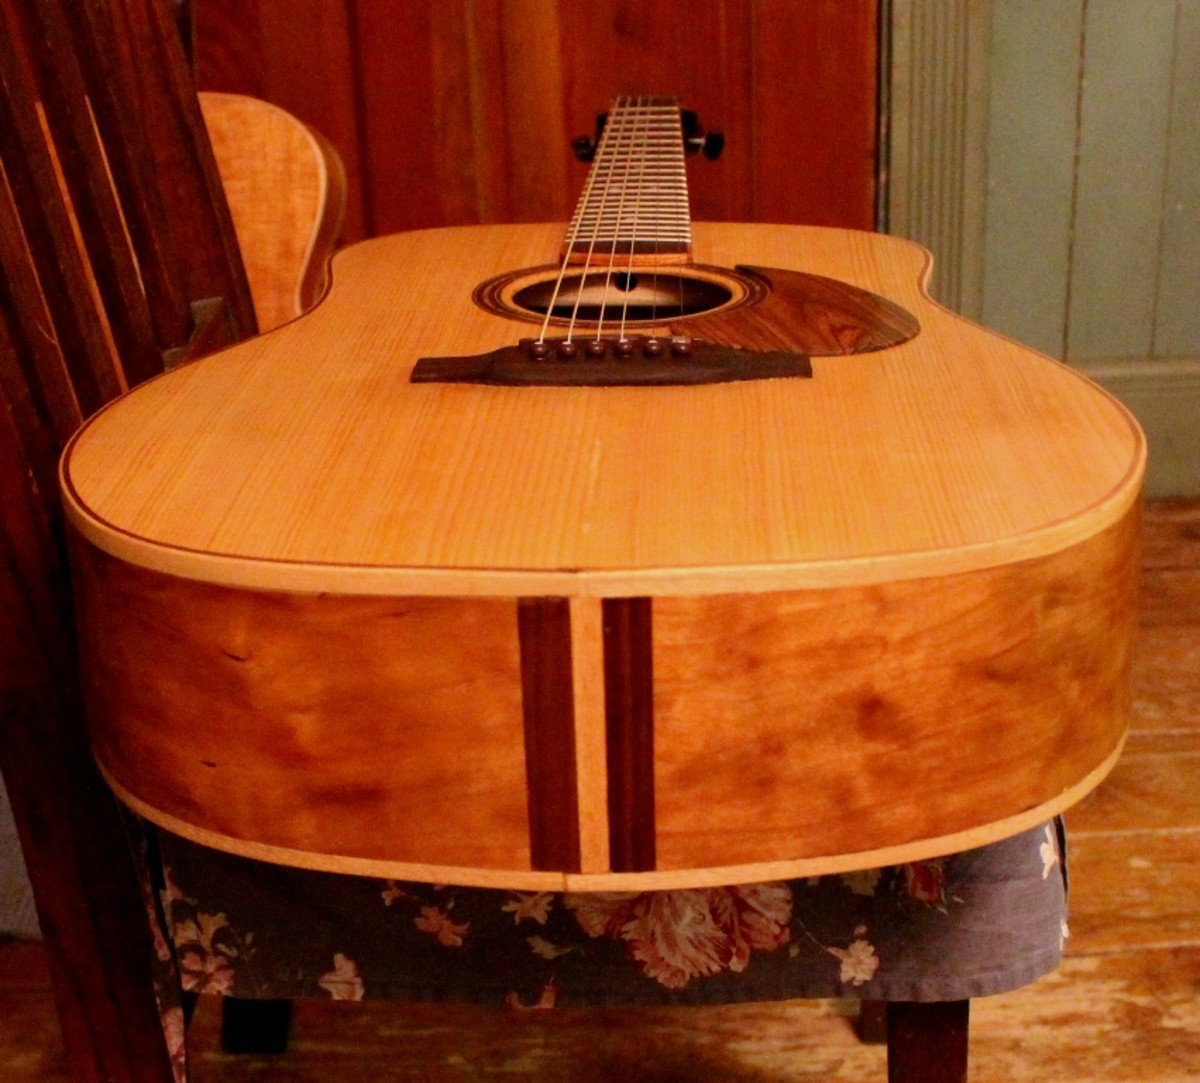 cost-of-materials-to-build-and-acoustic-guitar